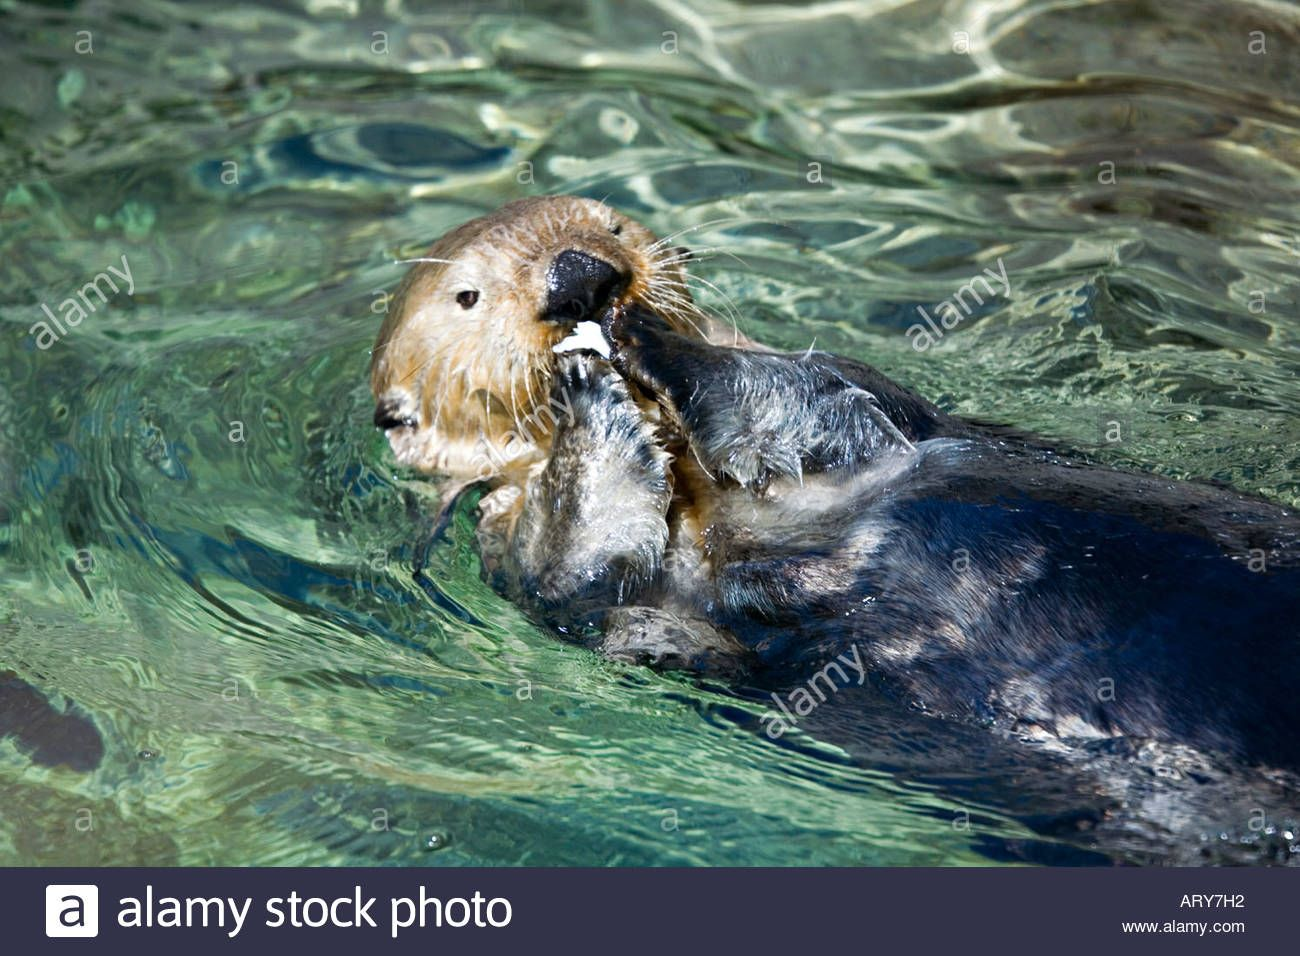 Sea Otter Enhydra Lutris Swimming On Back Eating Fish Pacific